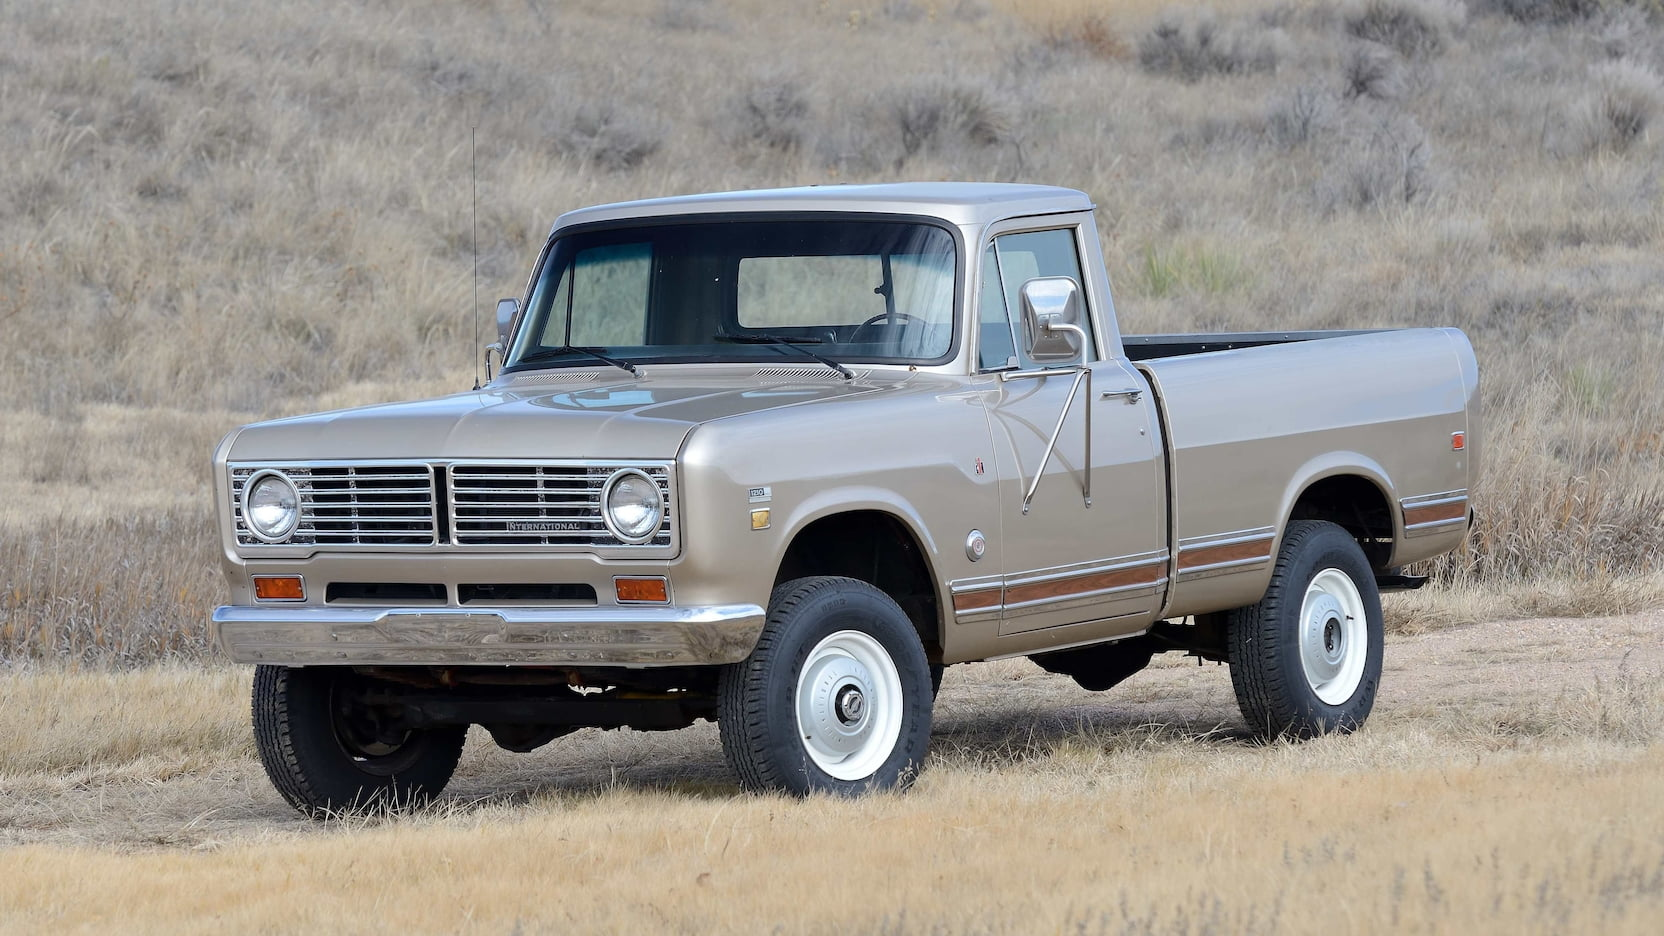 1972 International Harvester Pickups